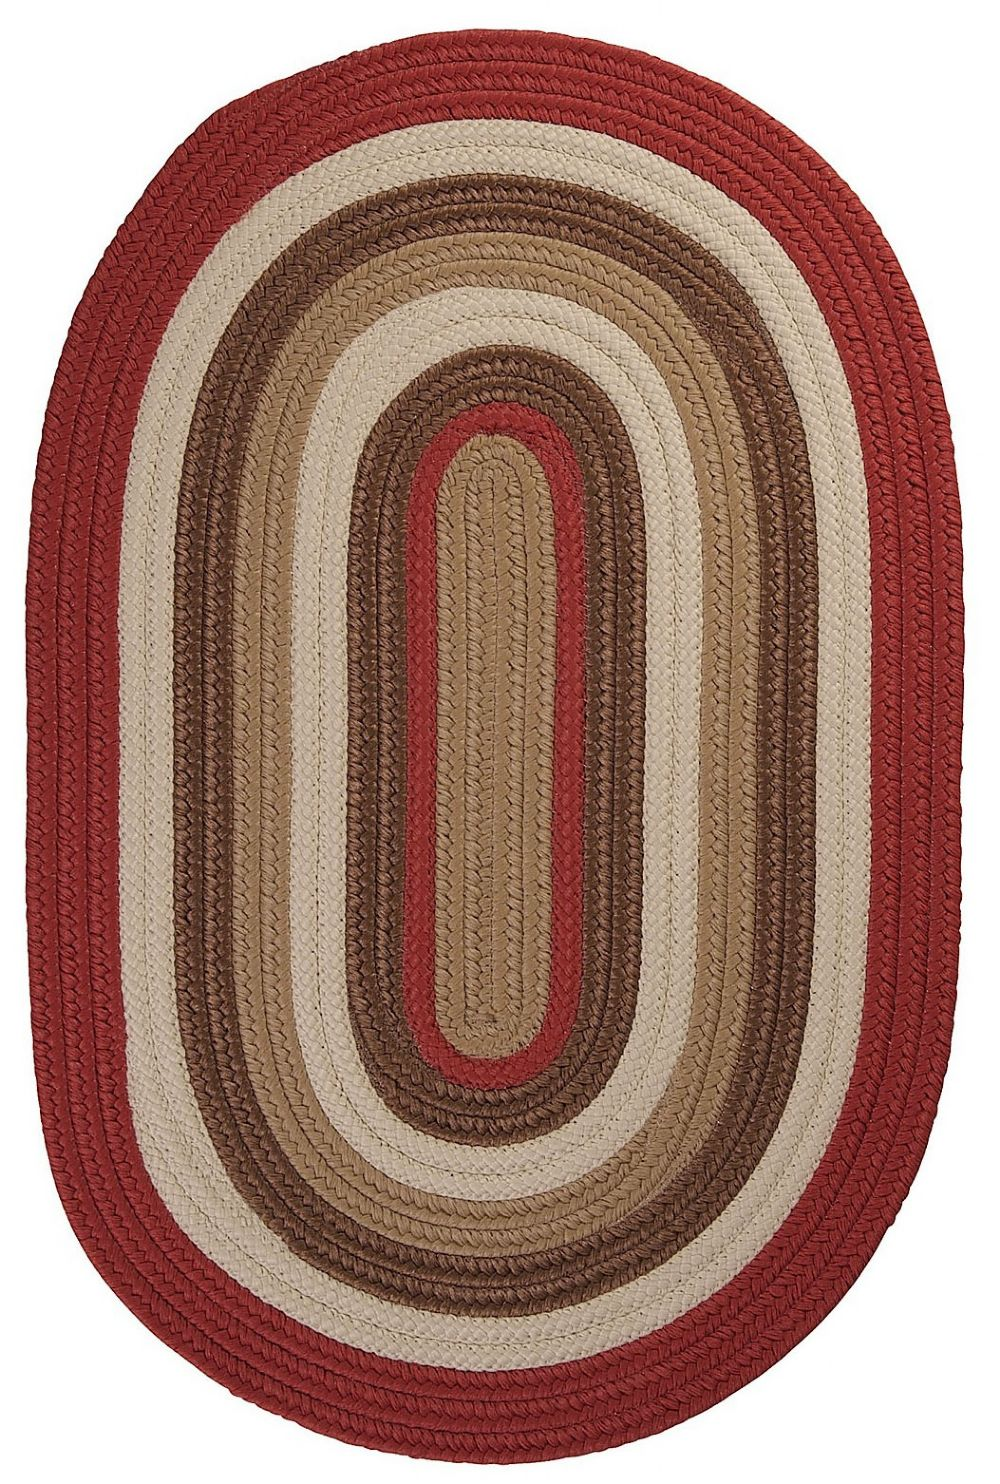 colonial mills brooklyn braided area rug collection